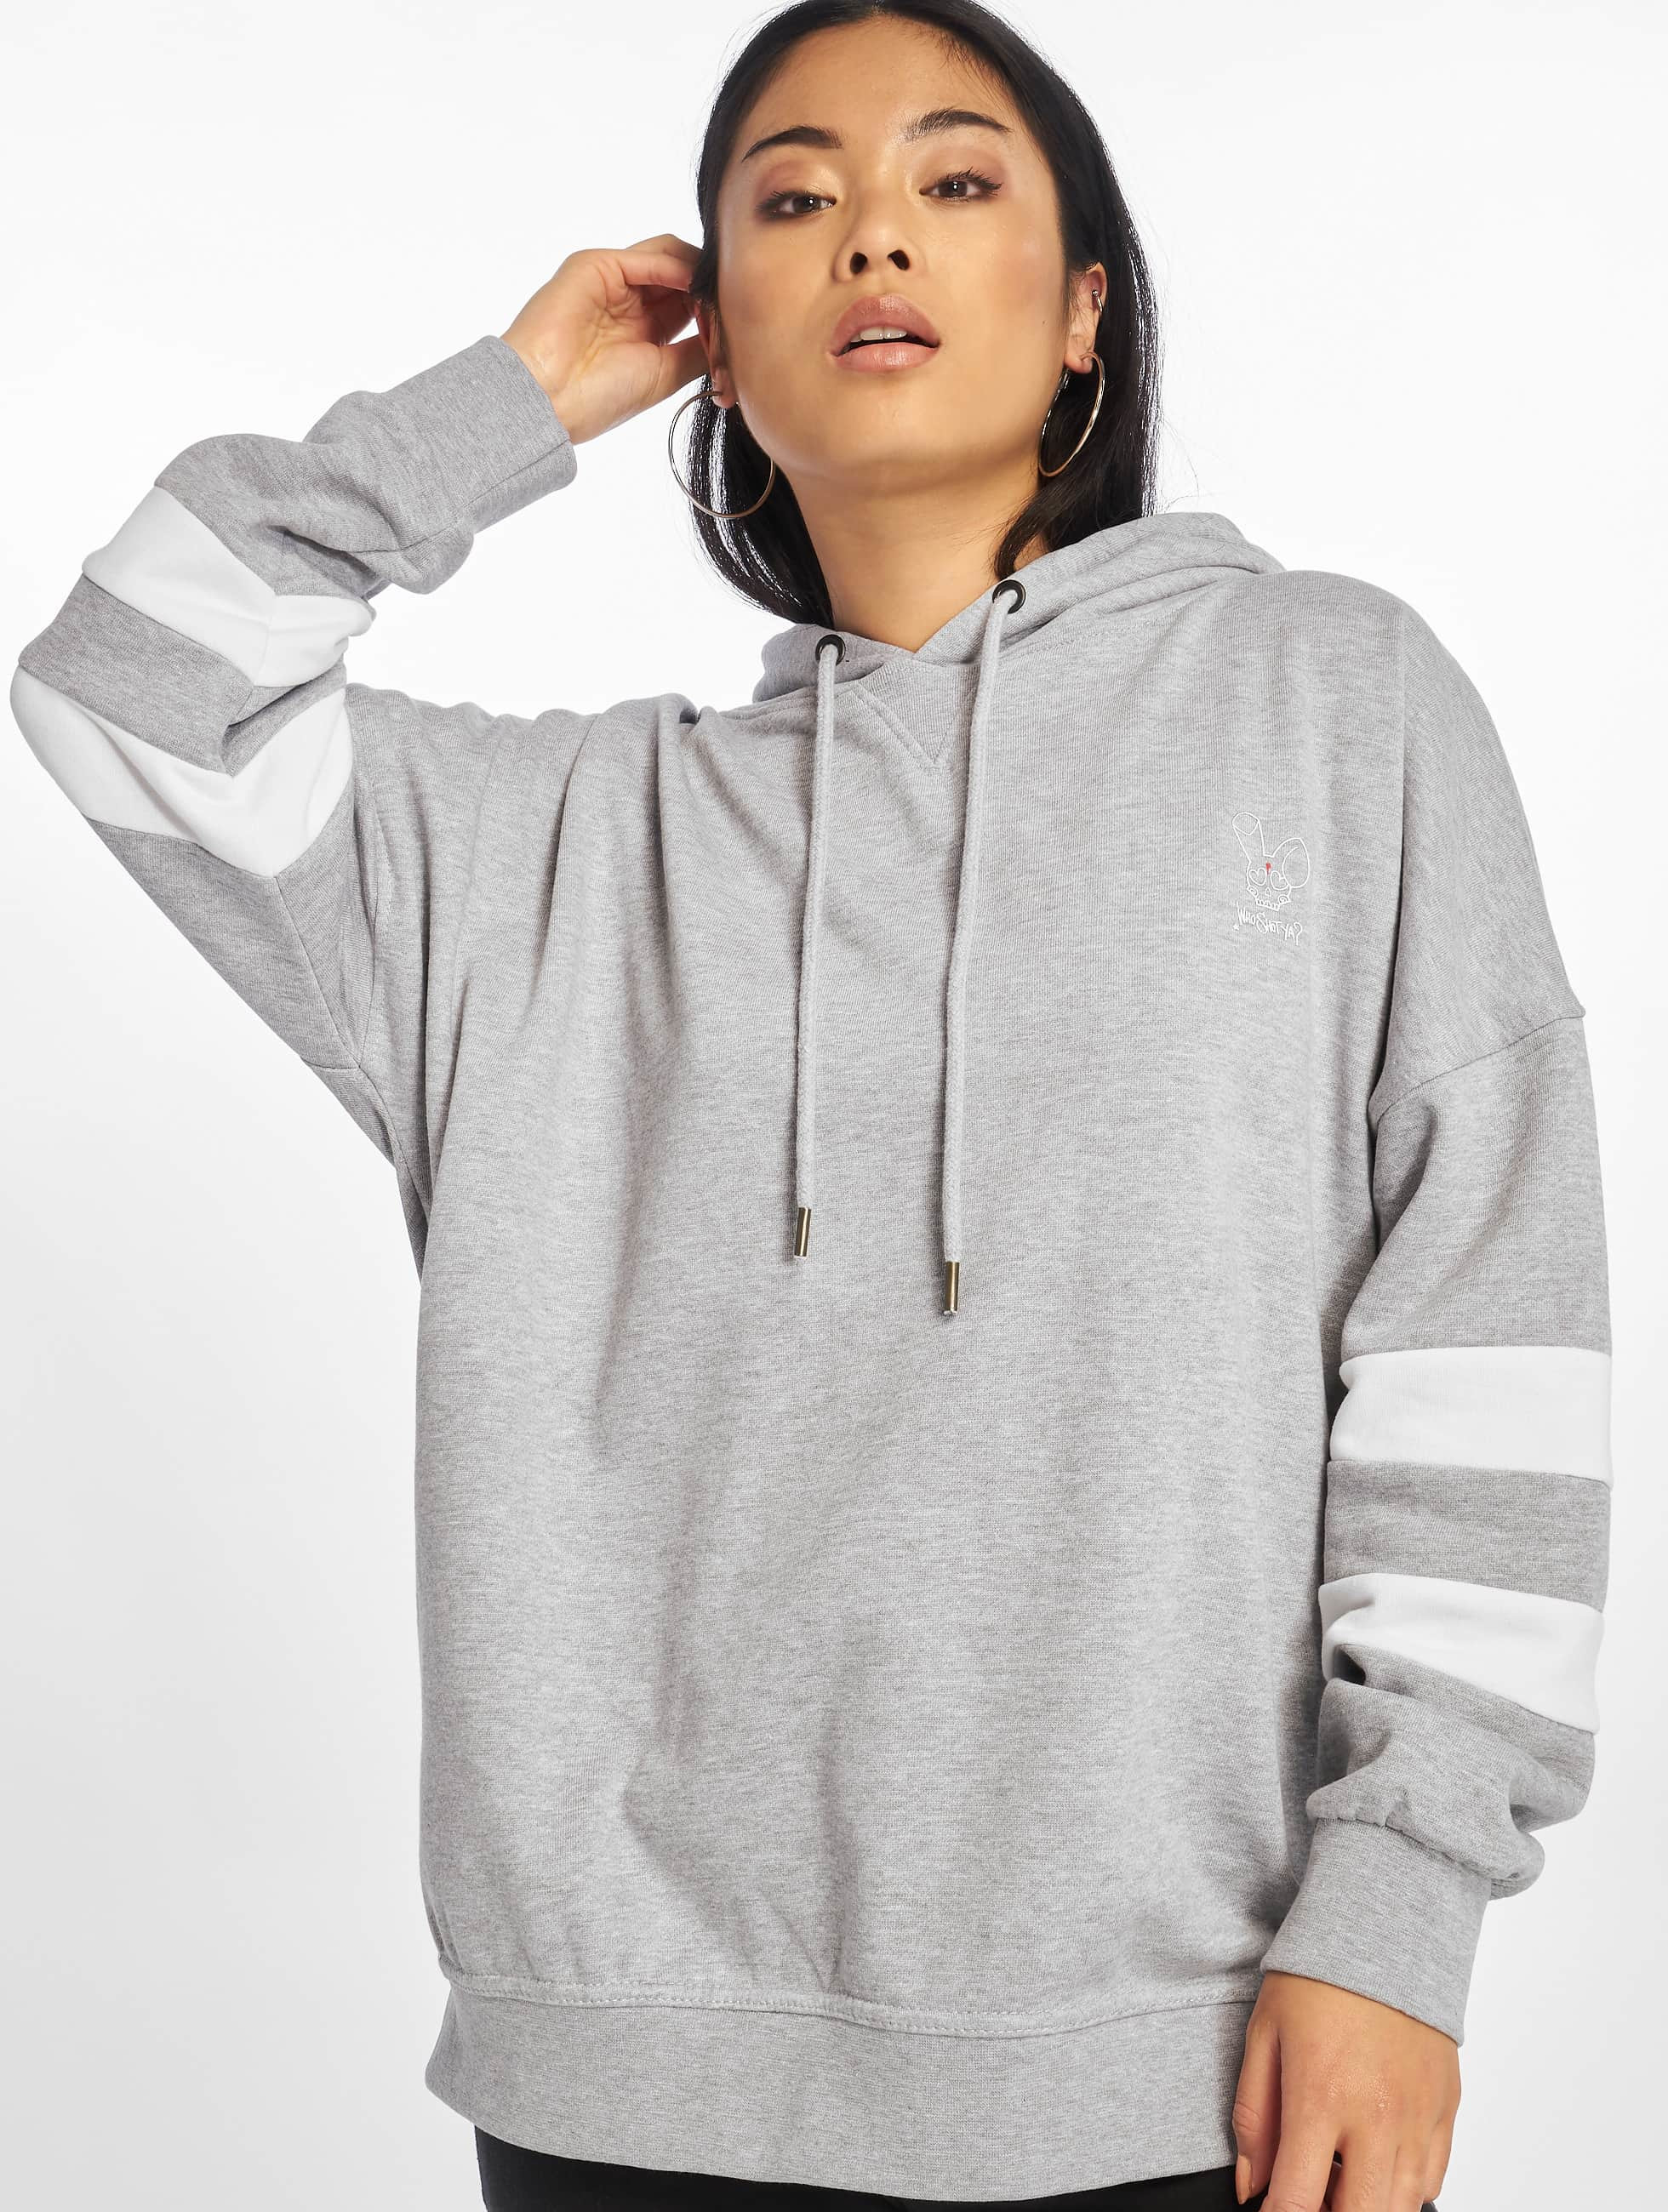 Who Shot Ya? / Hoodie Stripes in grey XS